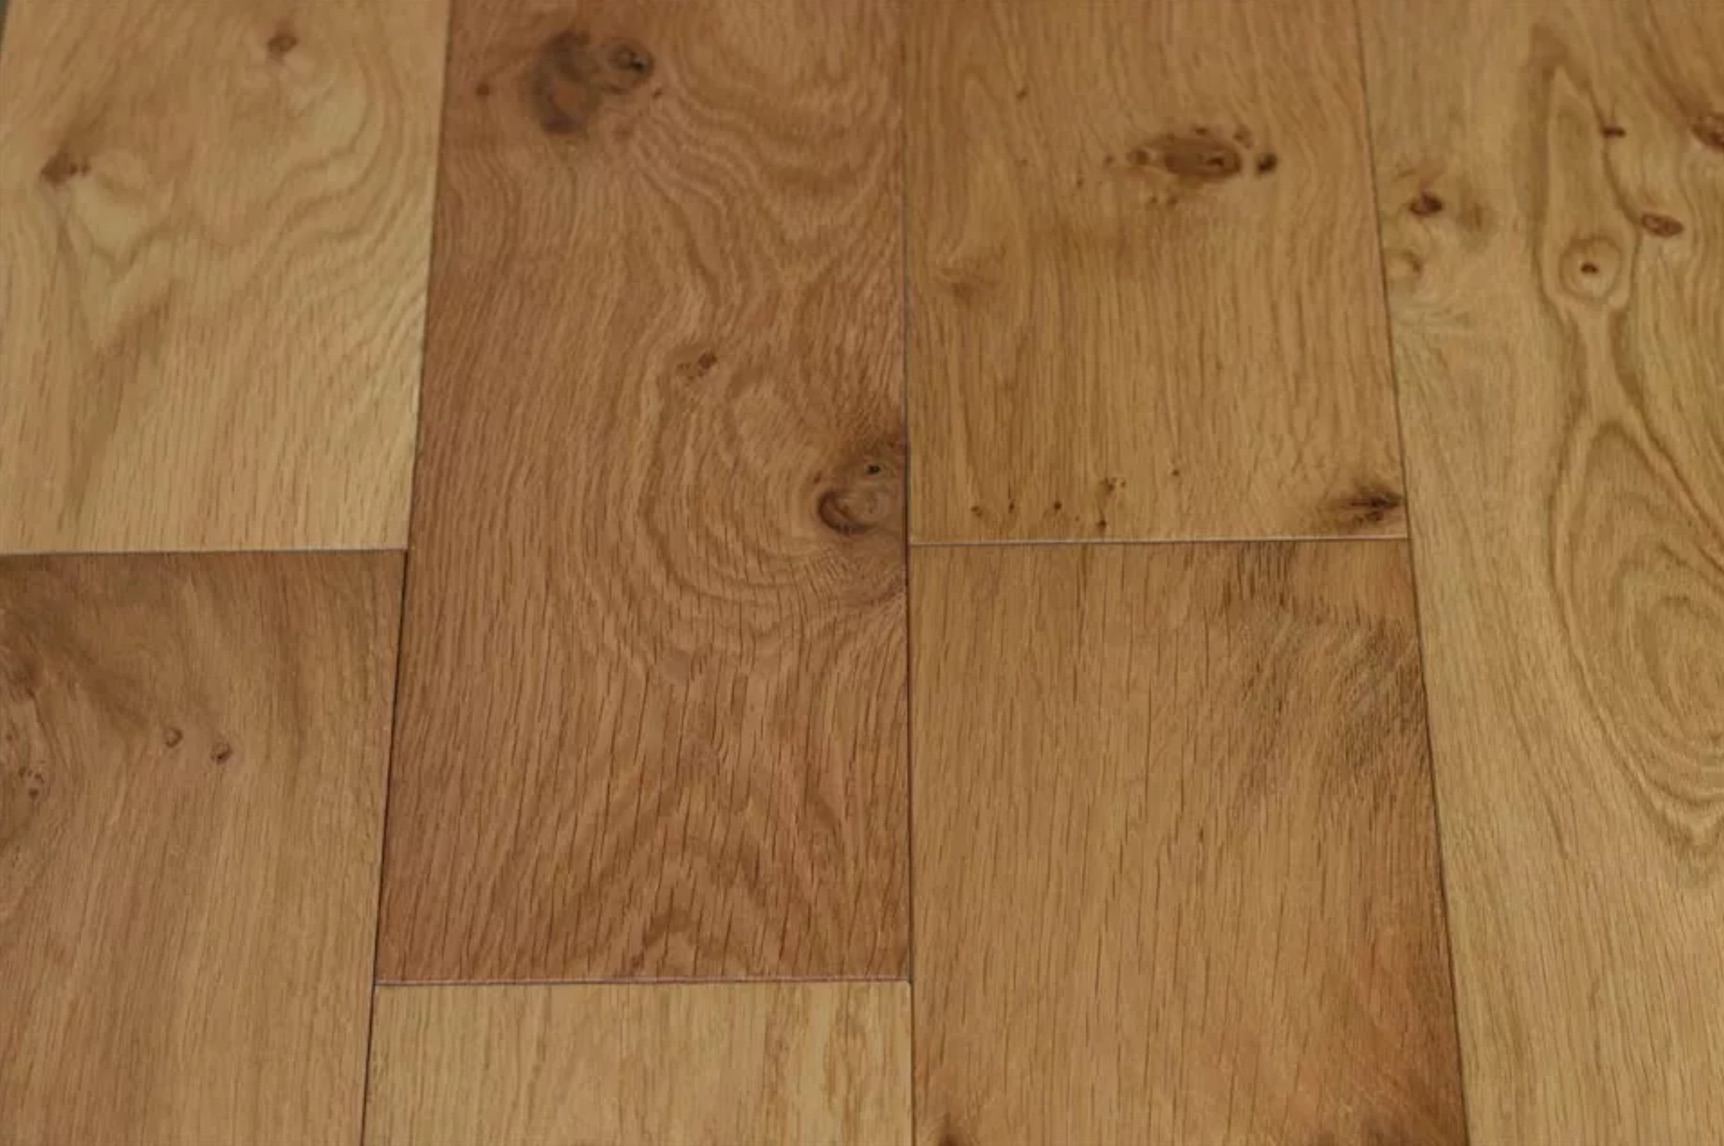 Wide Plank Wood Flooring Is A Choice That Truly Looks Expensive Everyone Knows You Can Cut Lots Of Narrow Planks From Tree But Only Very Small